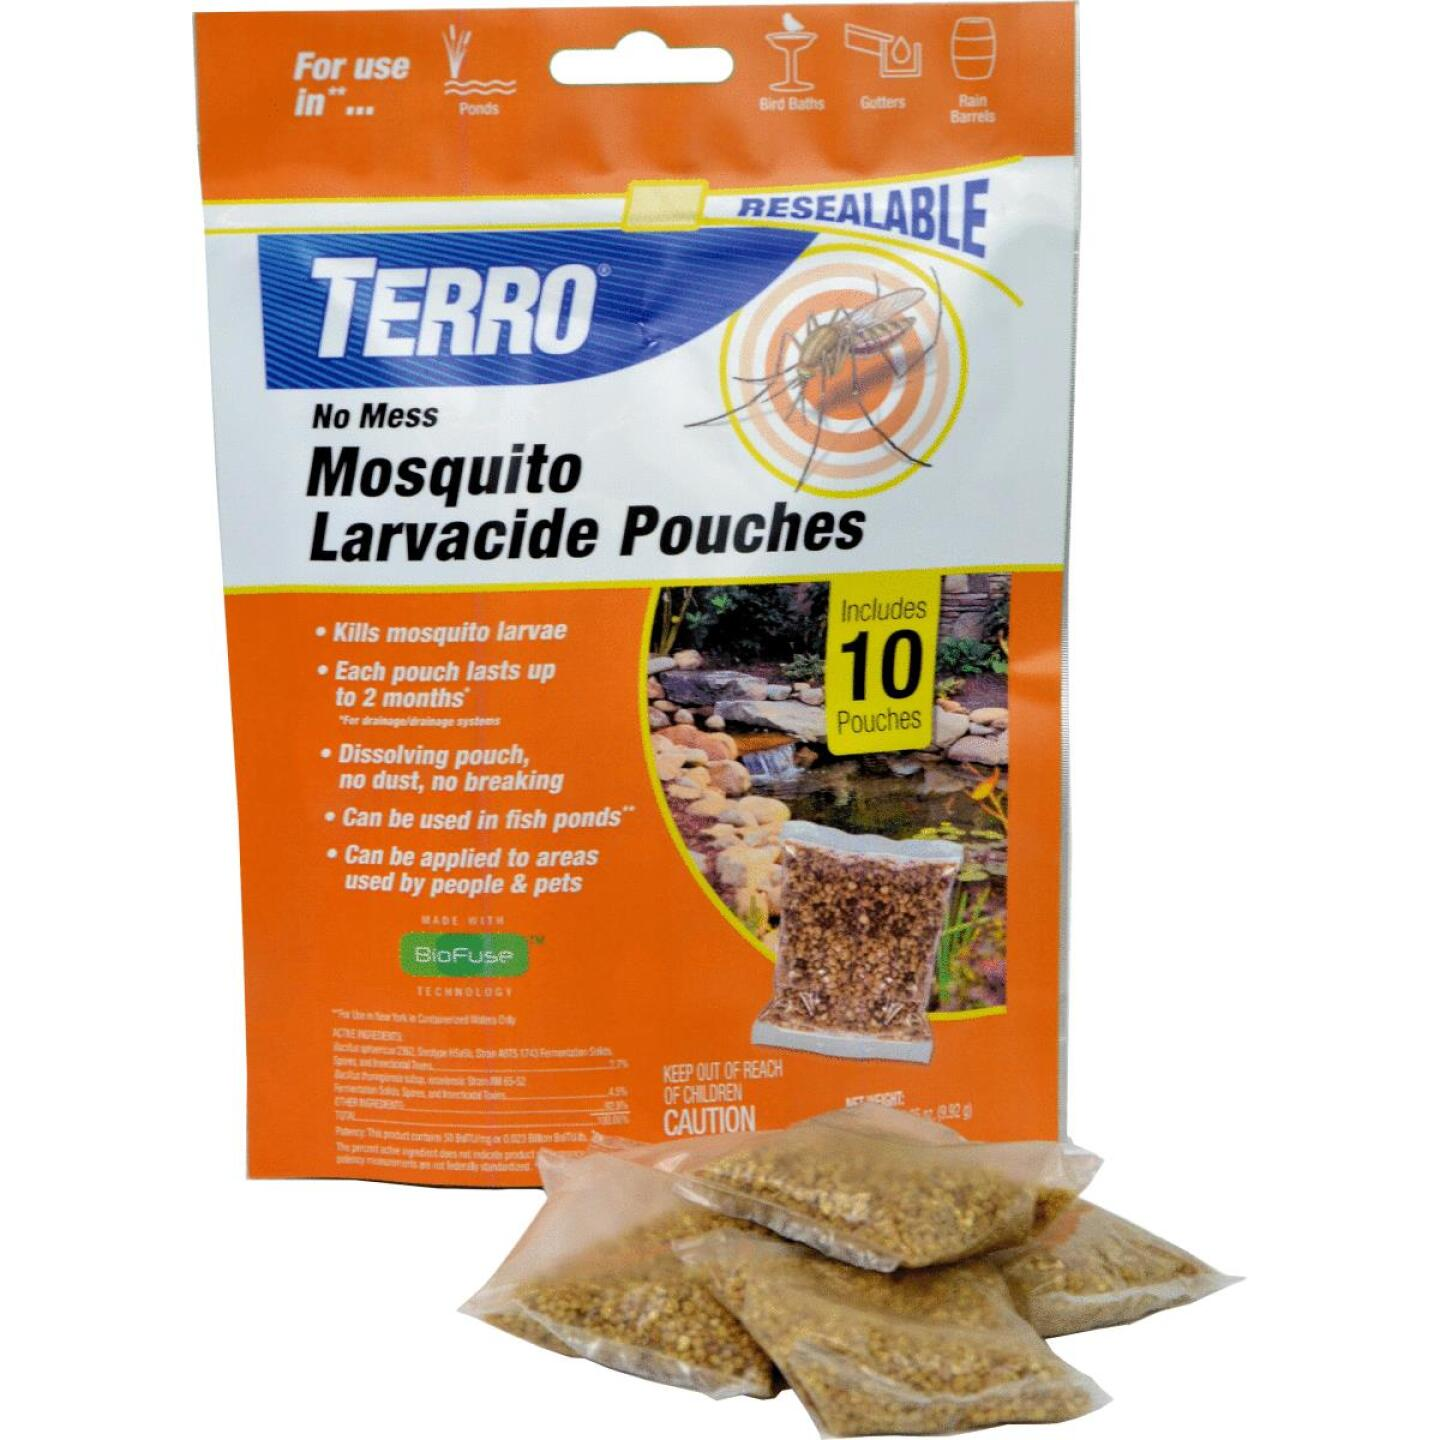 Terro No Mess Ready To Use Pouch Mosquito Larvacide Killer (10-Pack) Image 2